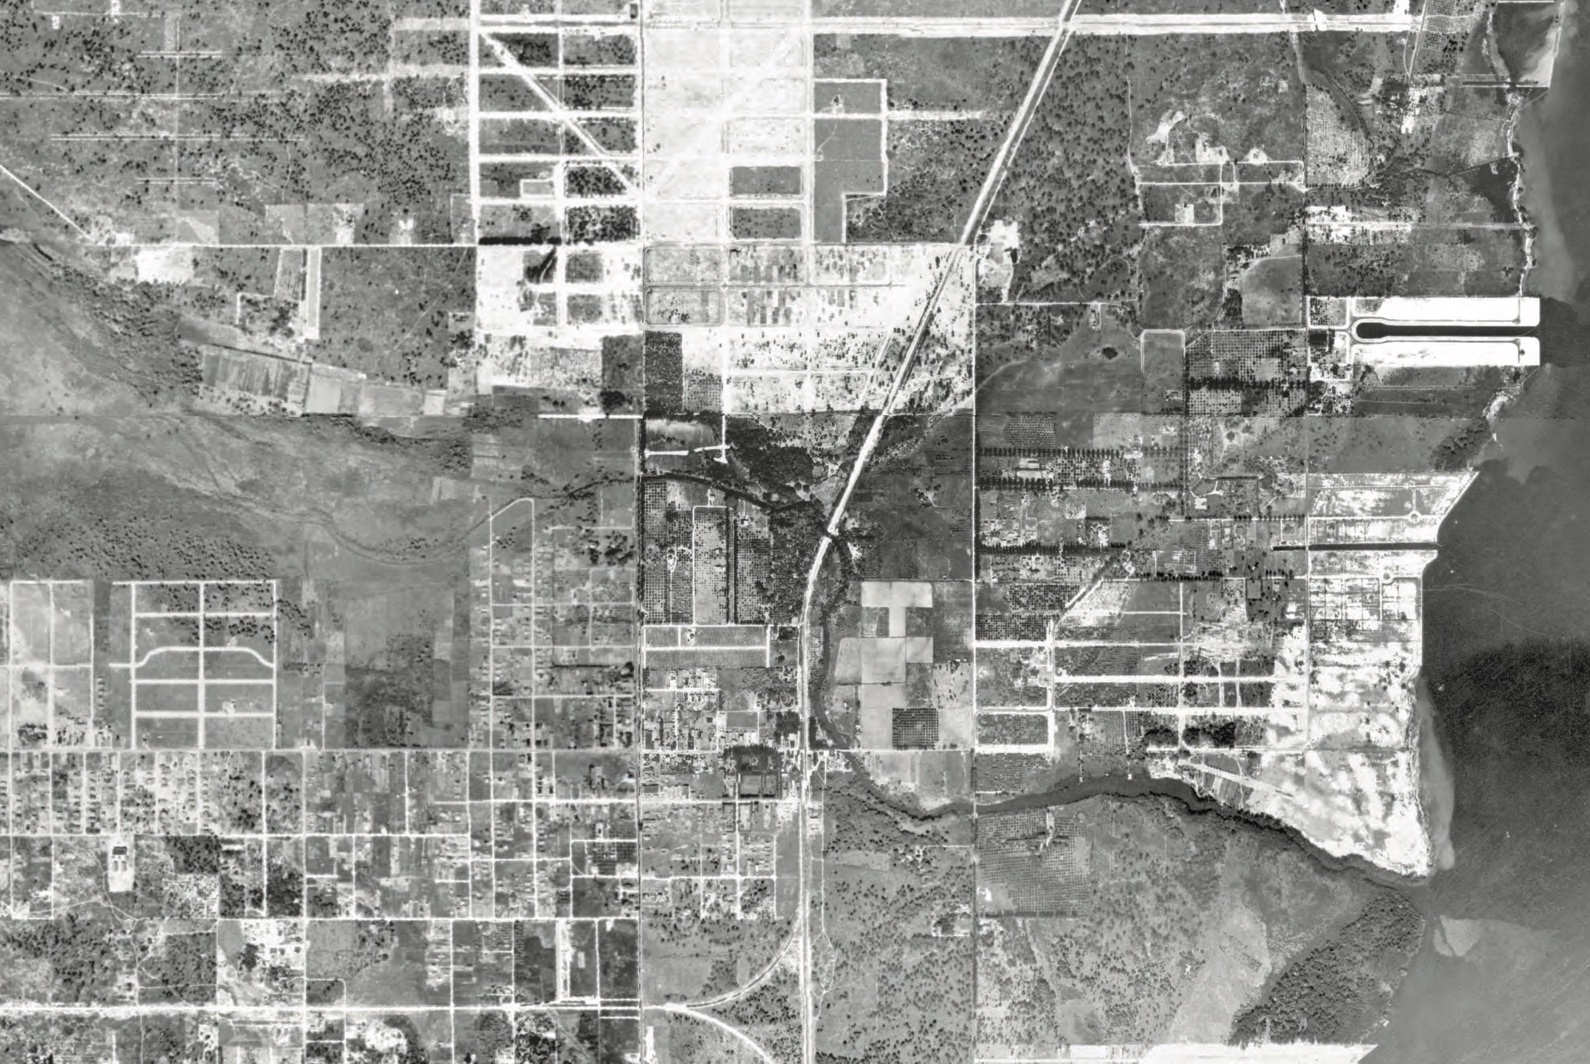 Aerial photograph of the pre-drainage Little River, 1924